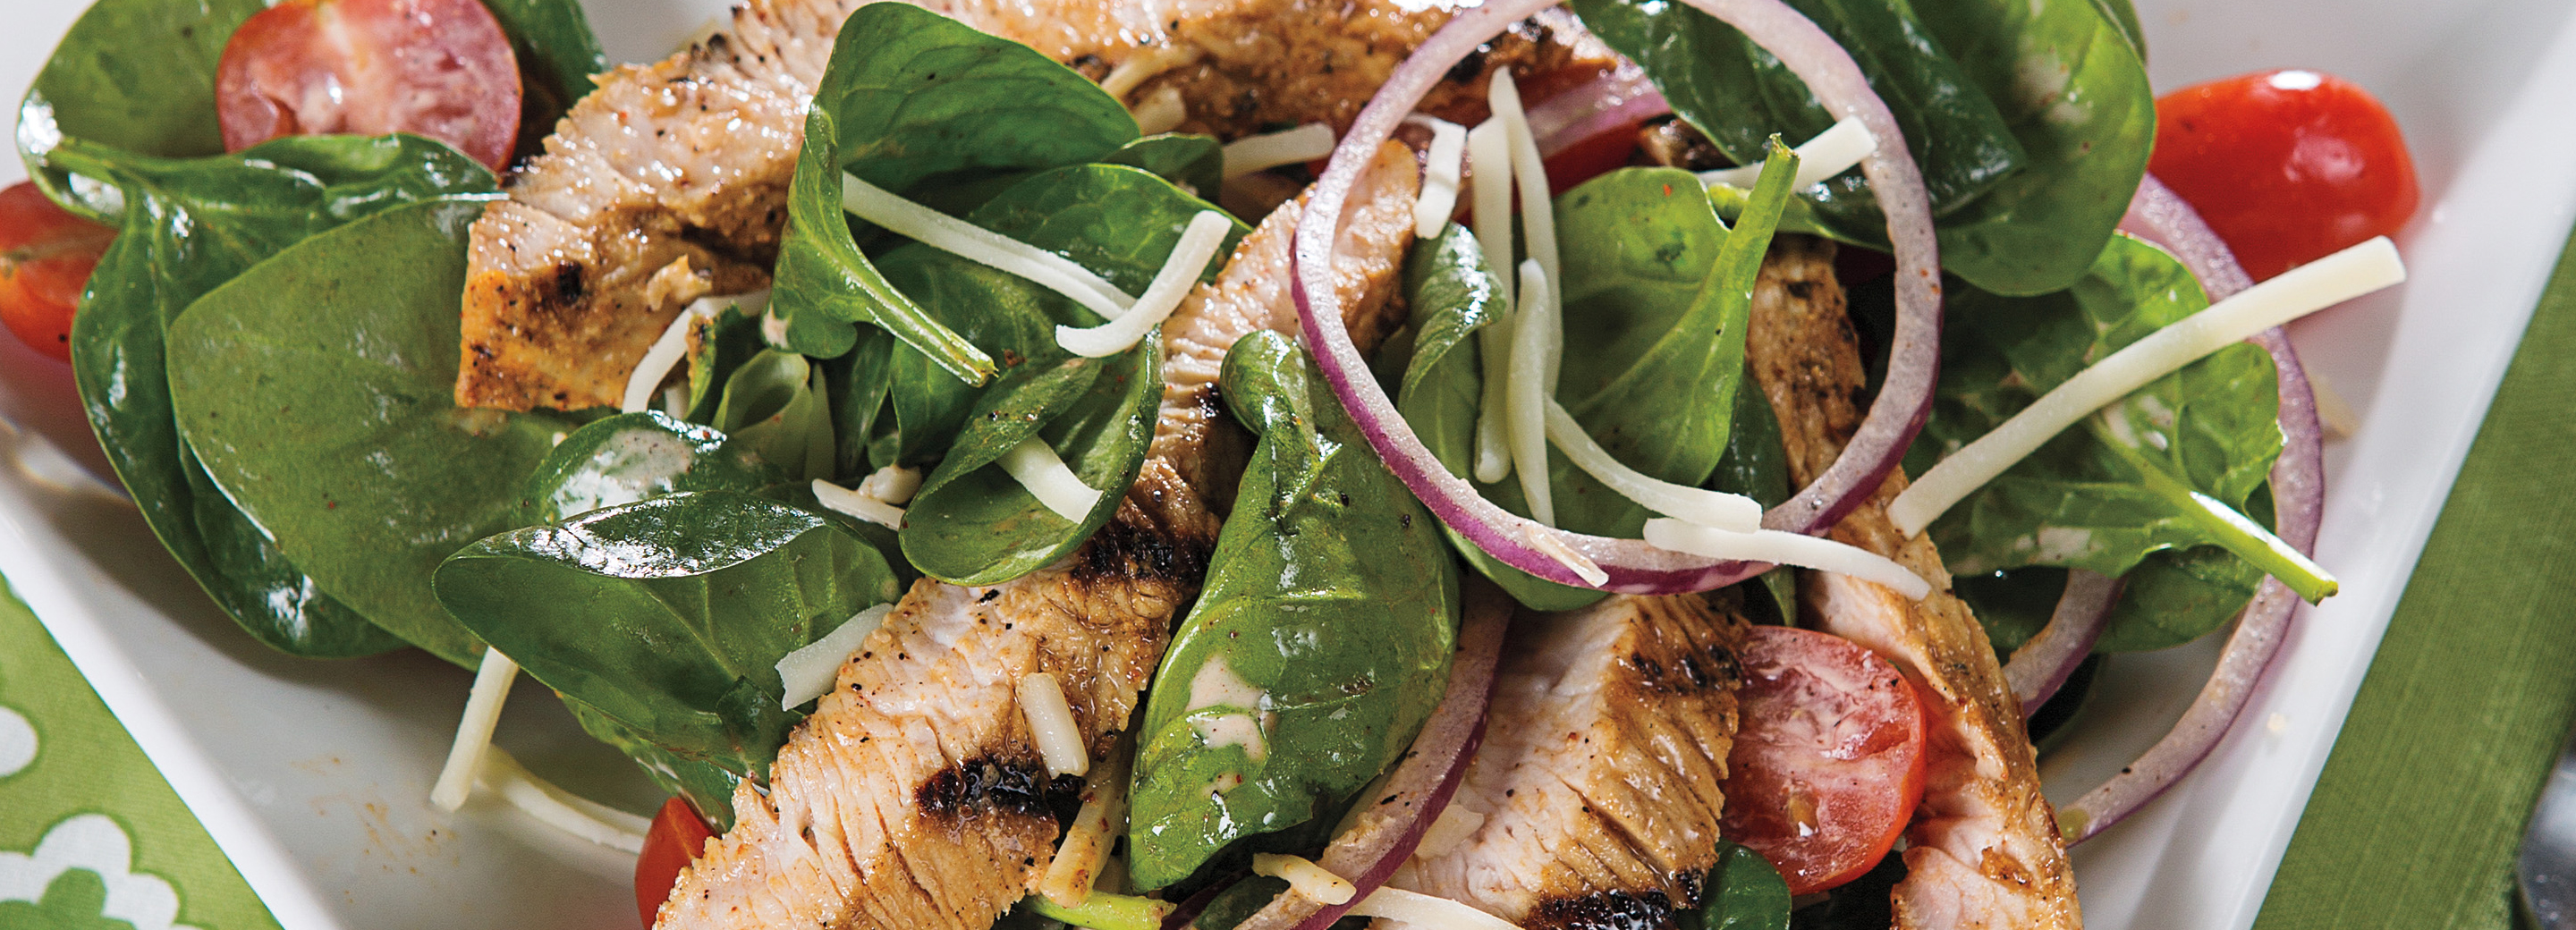 Grilled Turkey Spinach Salad with Jalapeño-Lime Vinaigrette